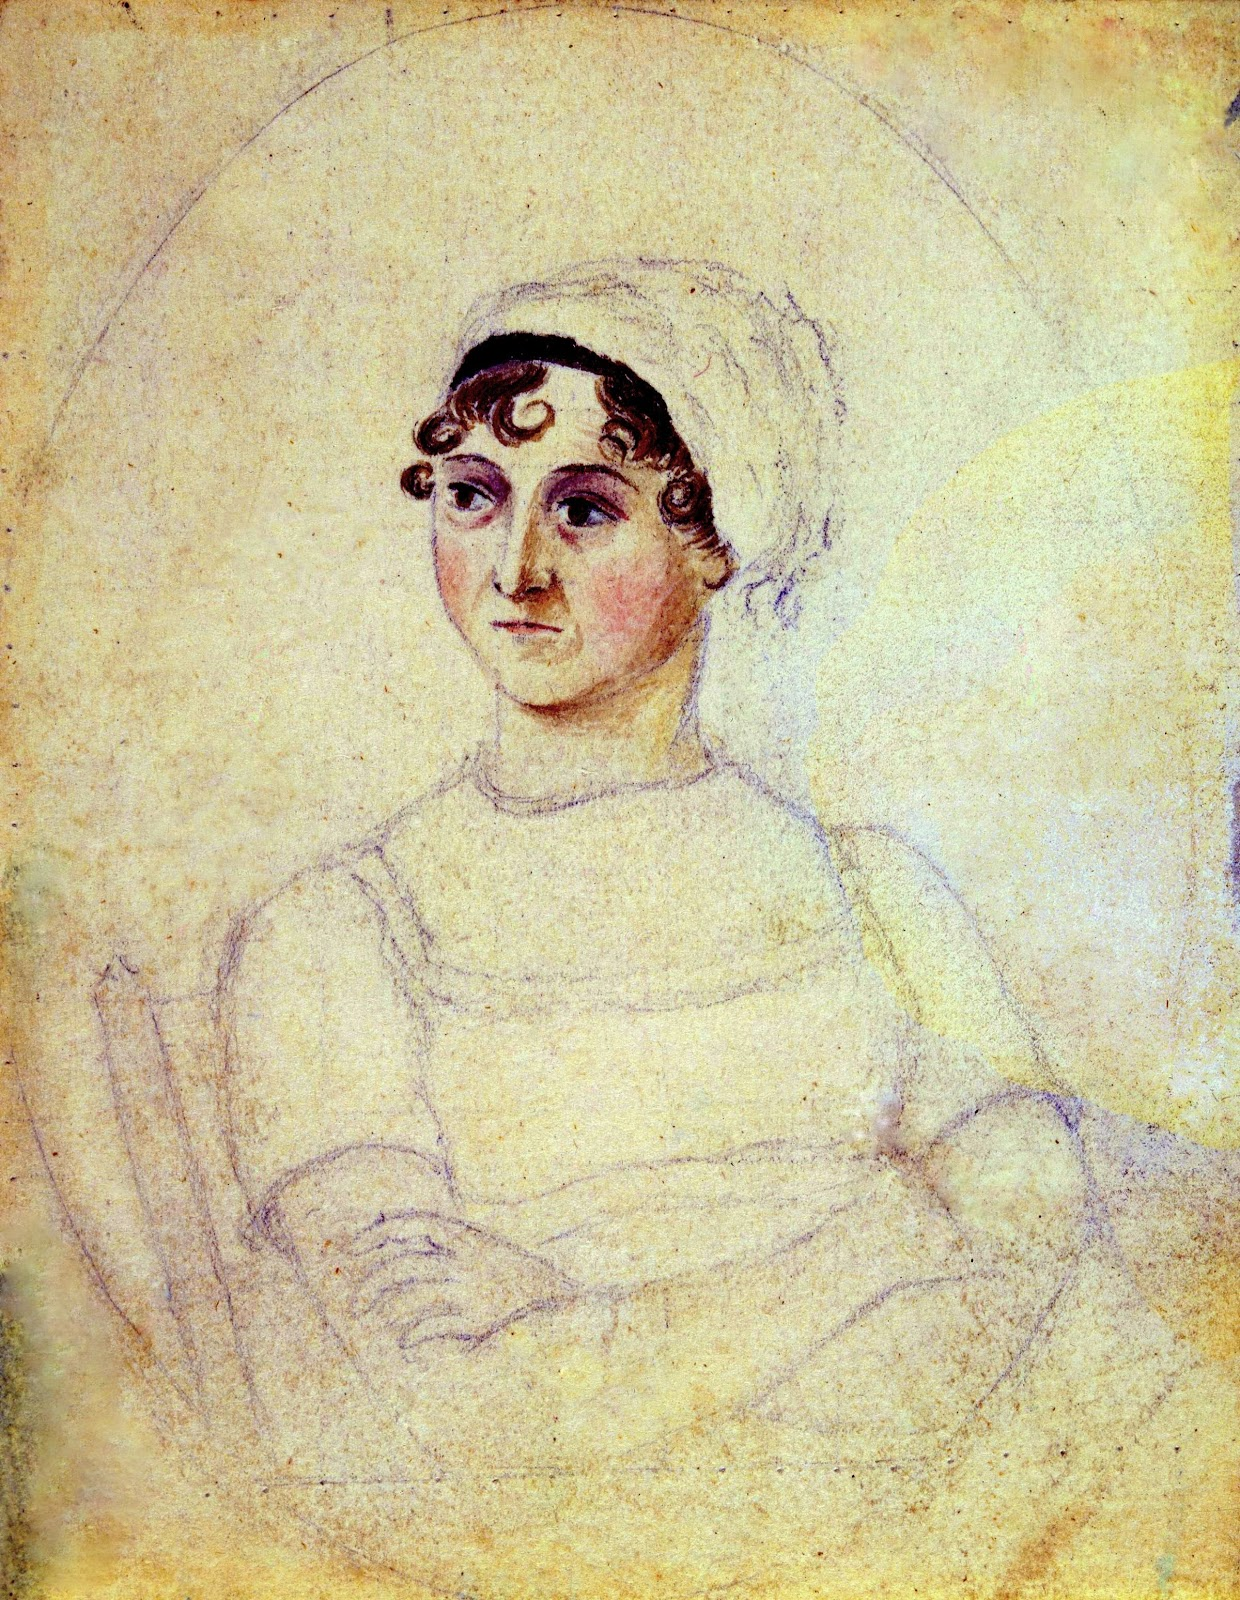 jane austen bi centenary essays Brontëblog at the brontë agenda recent and upcoming books brontës in the news tuesday, may 31, 2016 capturing jane's character tuesday, may 31, 2016 9:32.